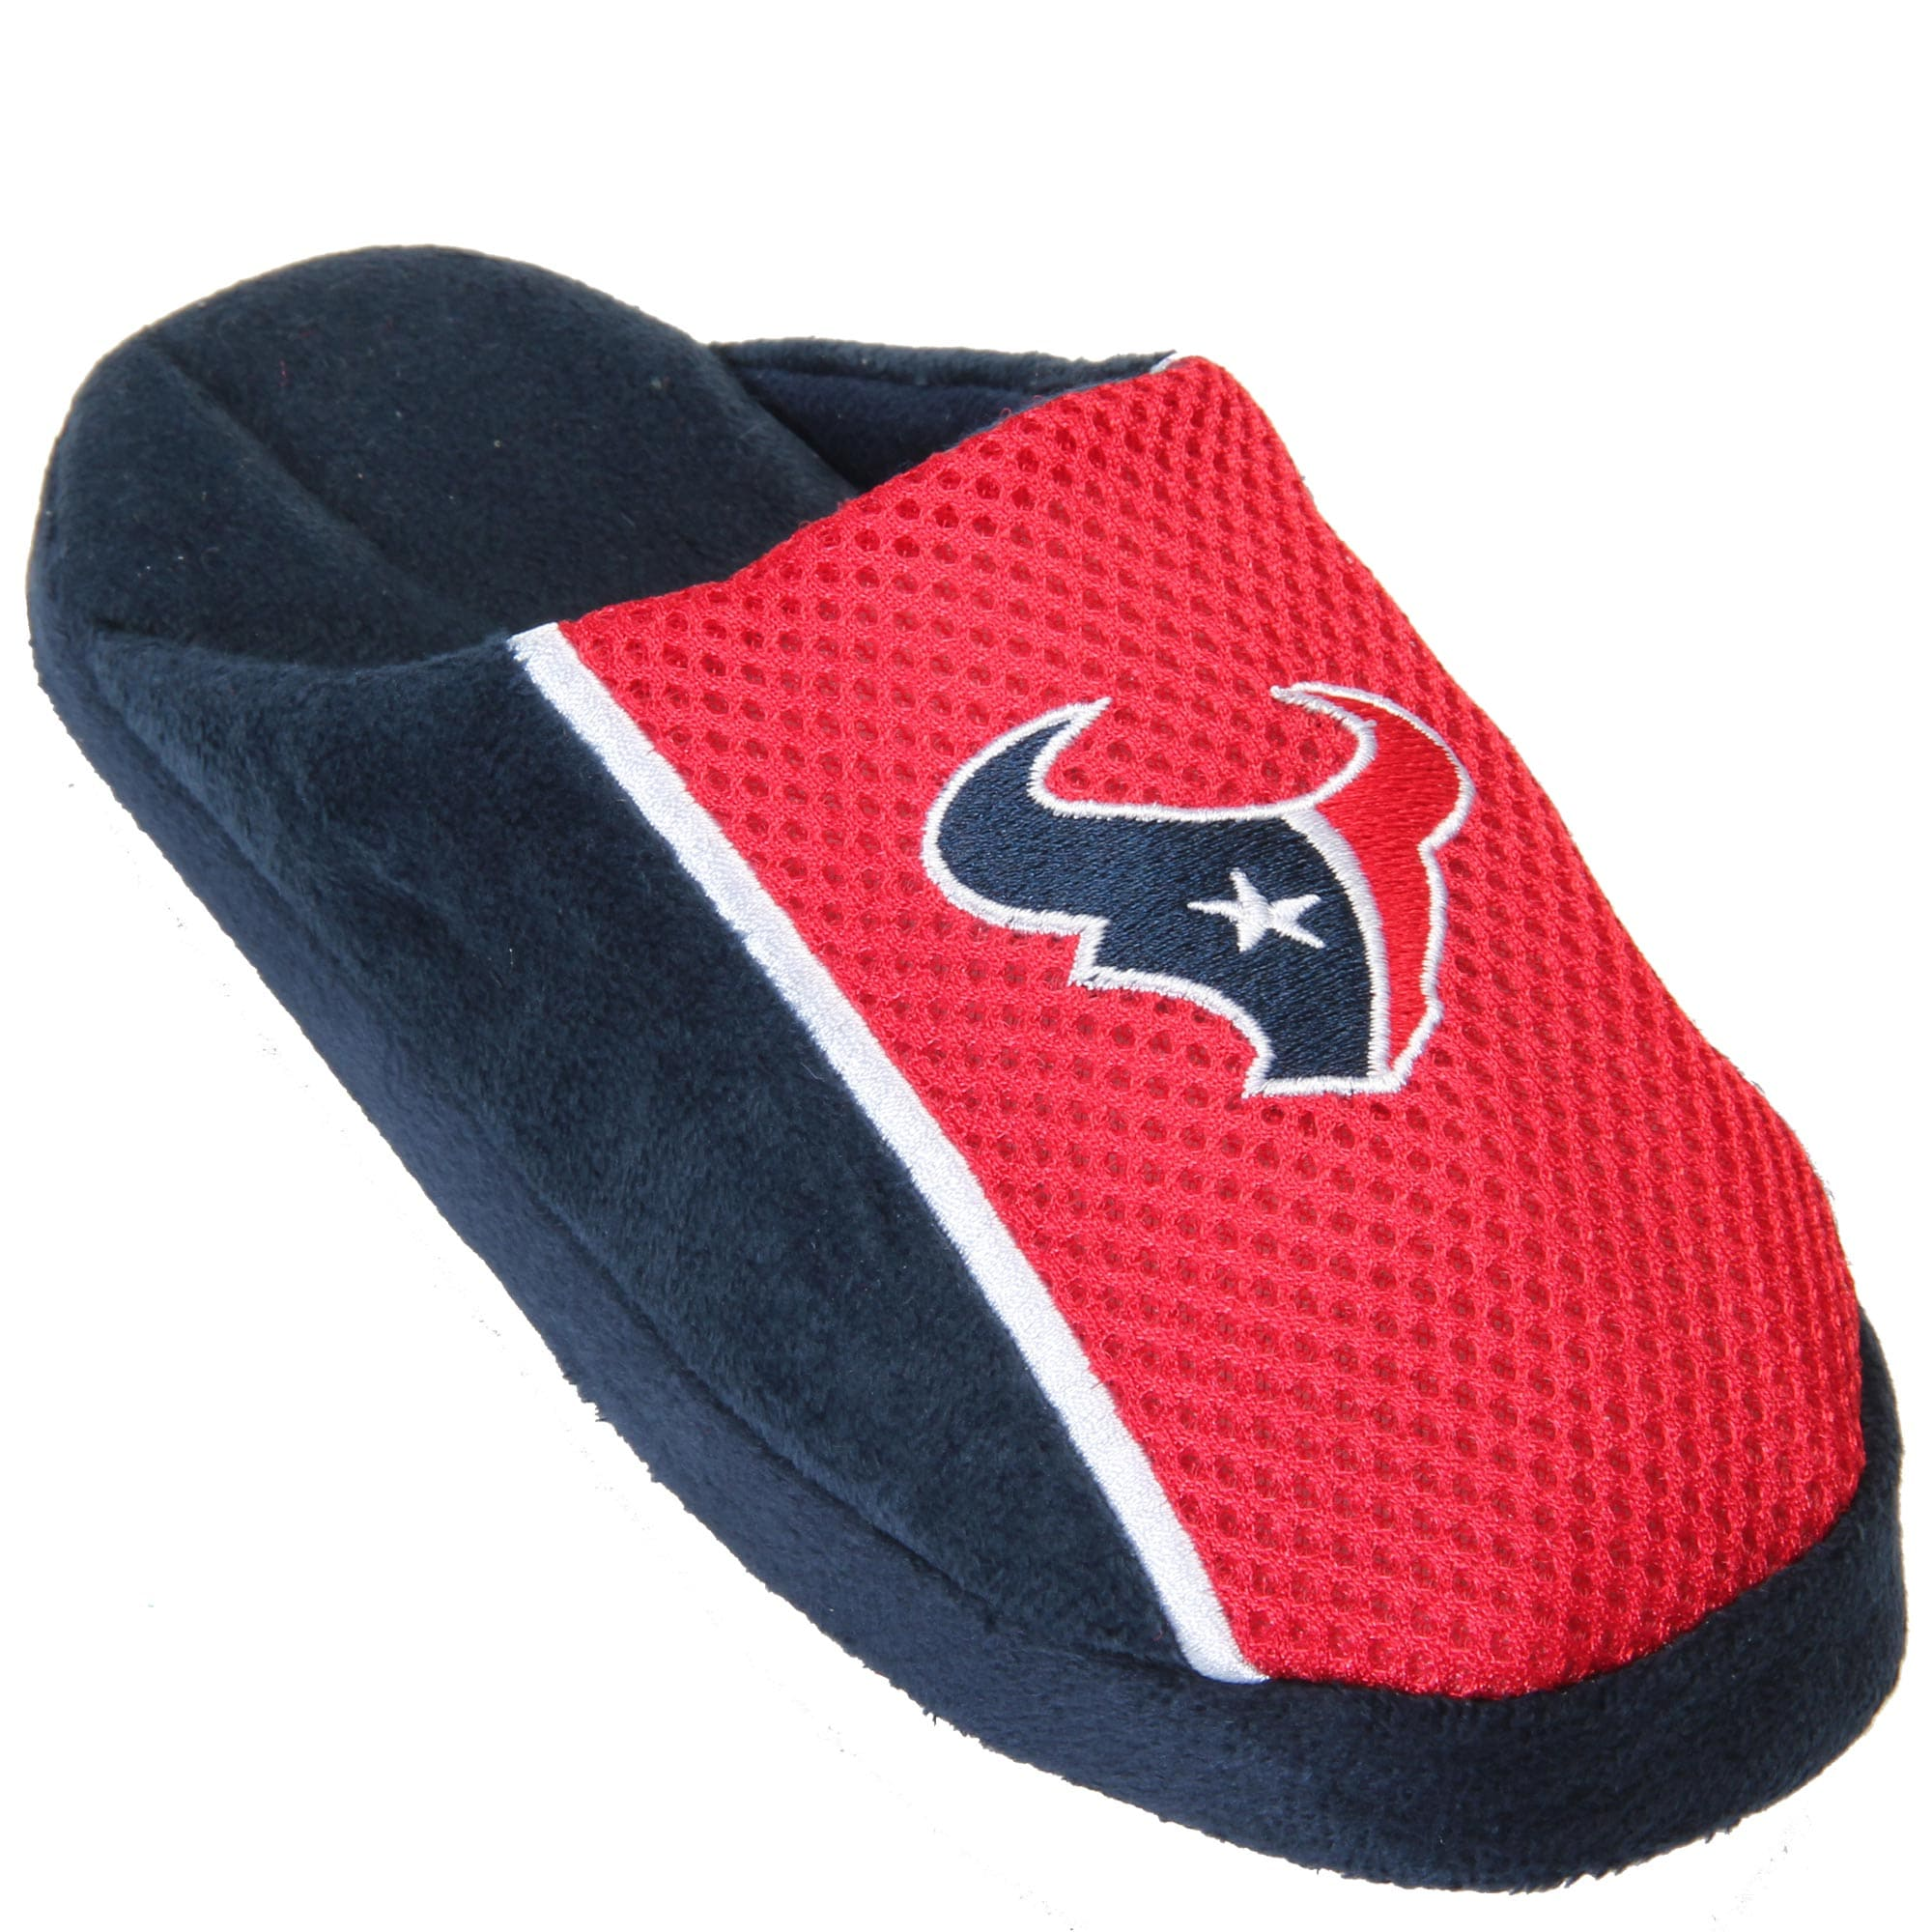 Houston Texans Youth Jersey Slippers